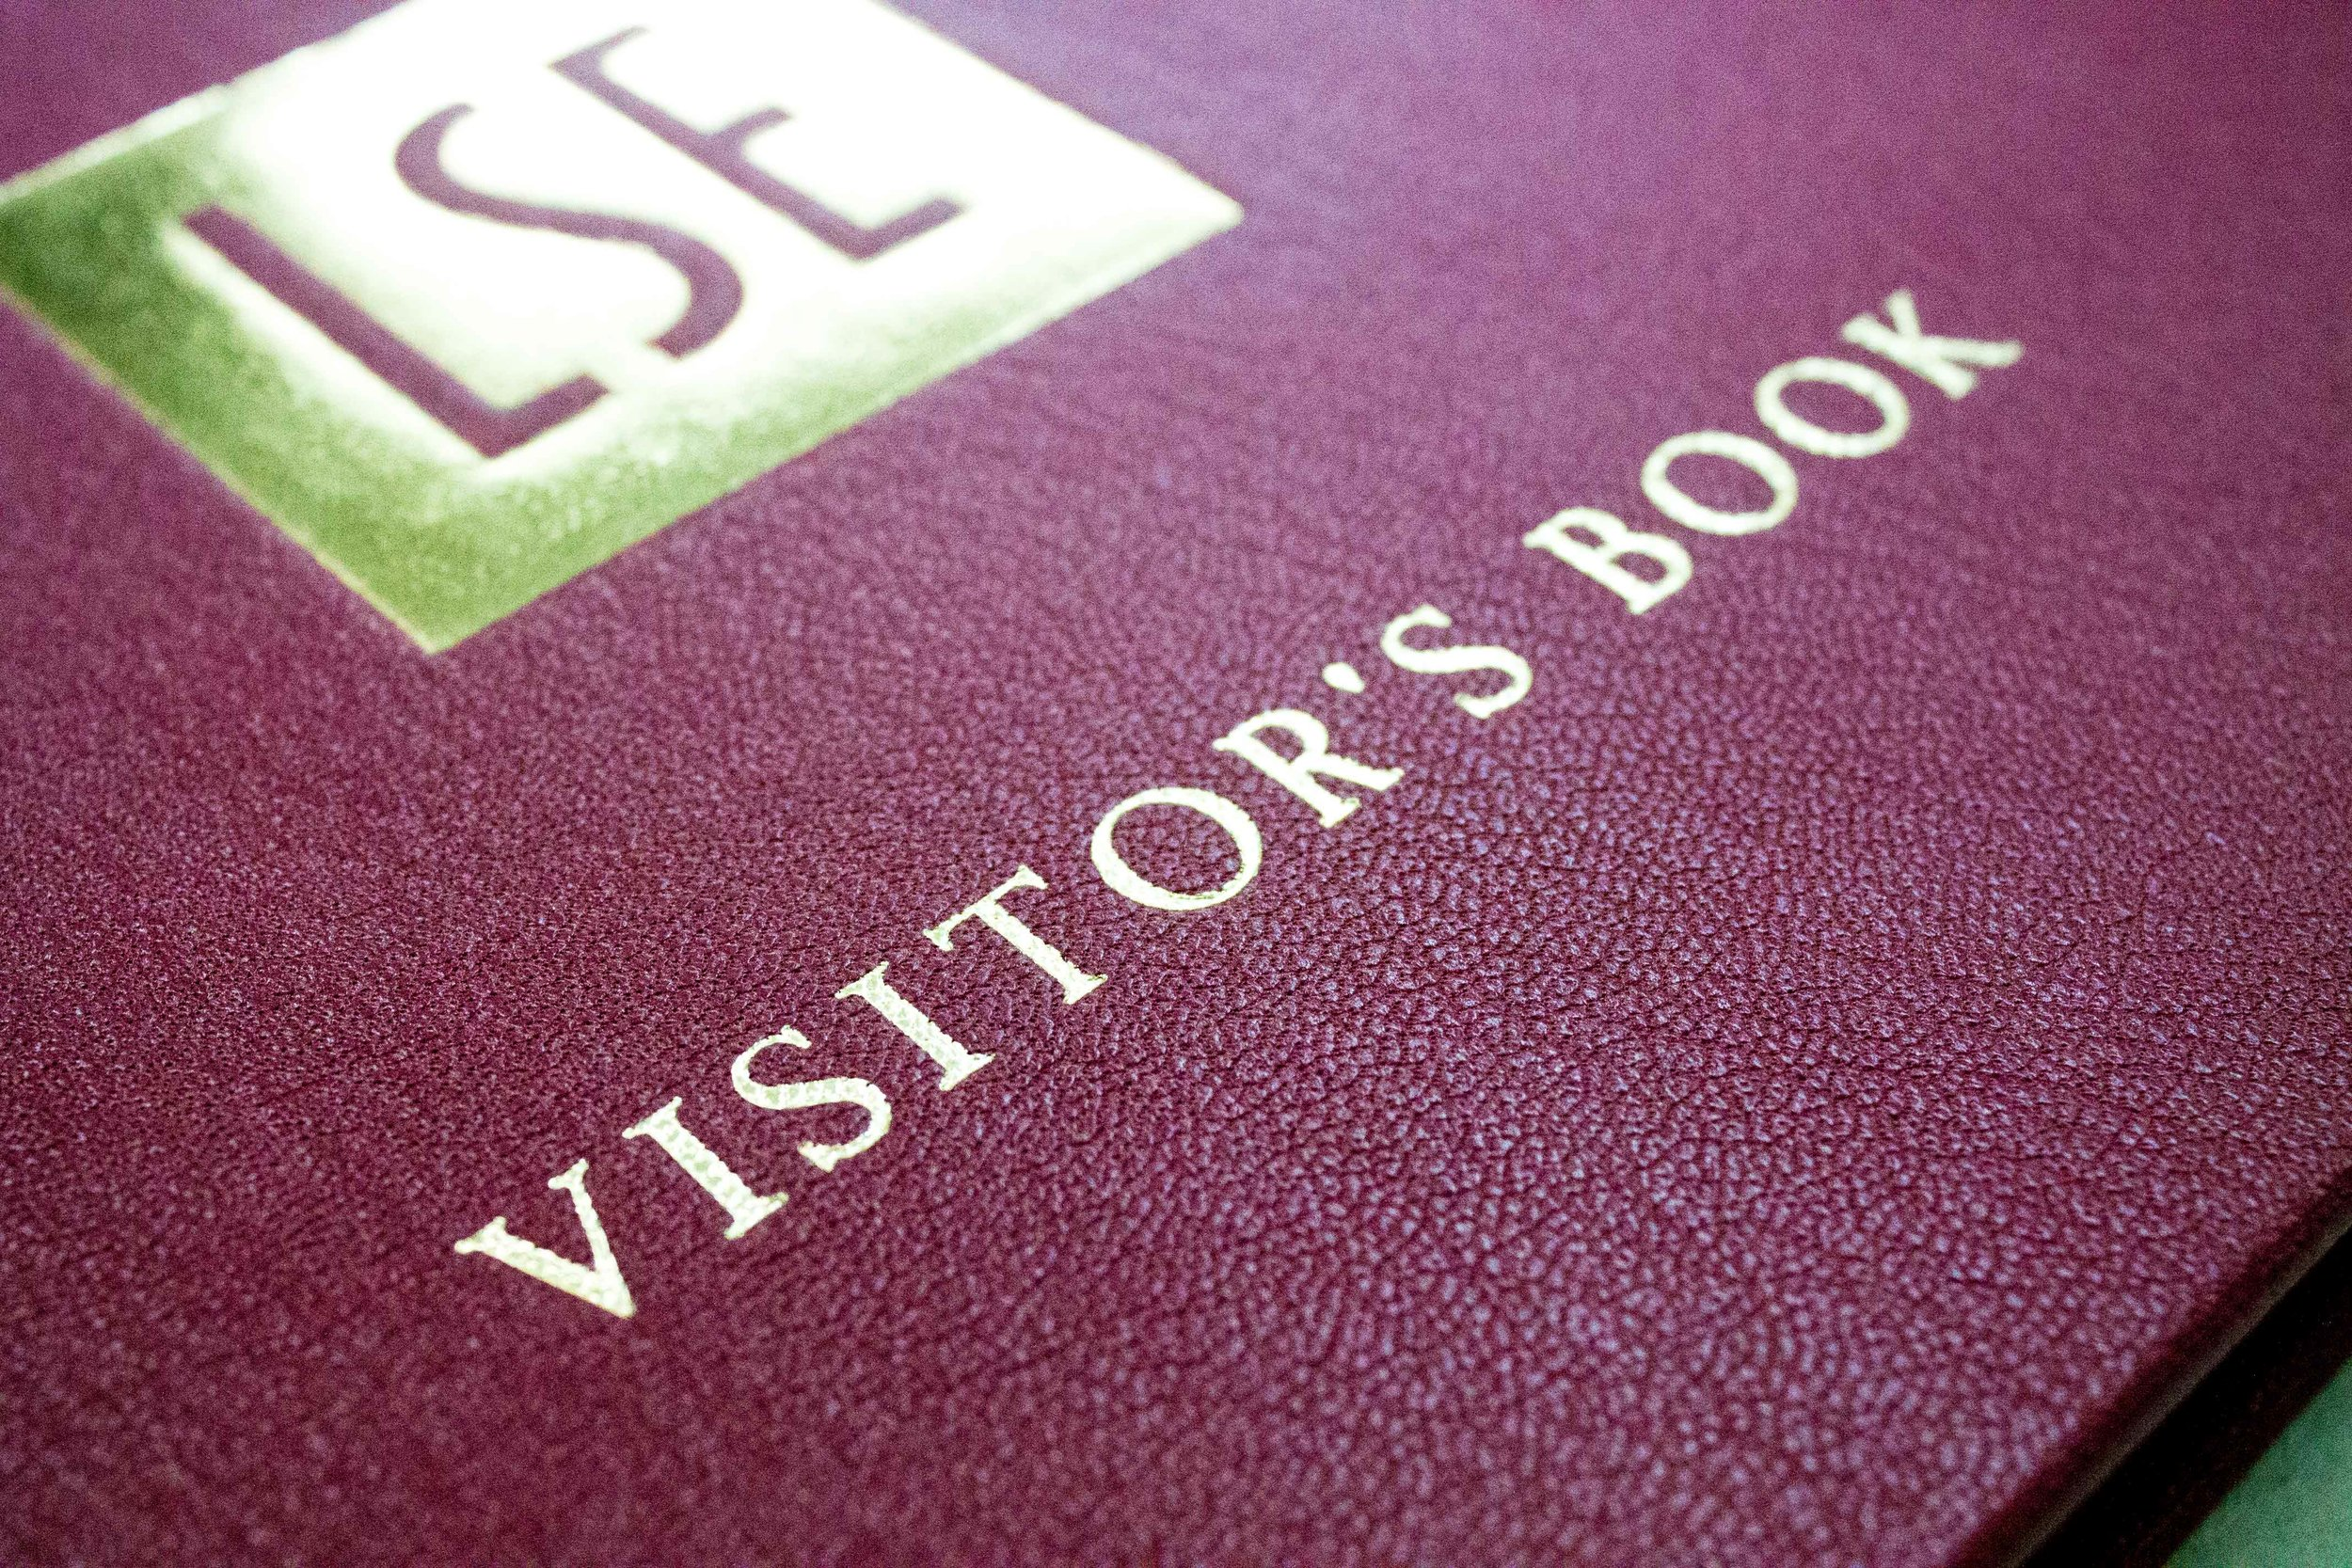 Bespoke Visitors' Book Leather and foil stamped